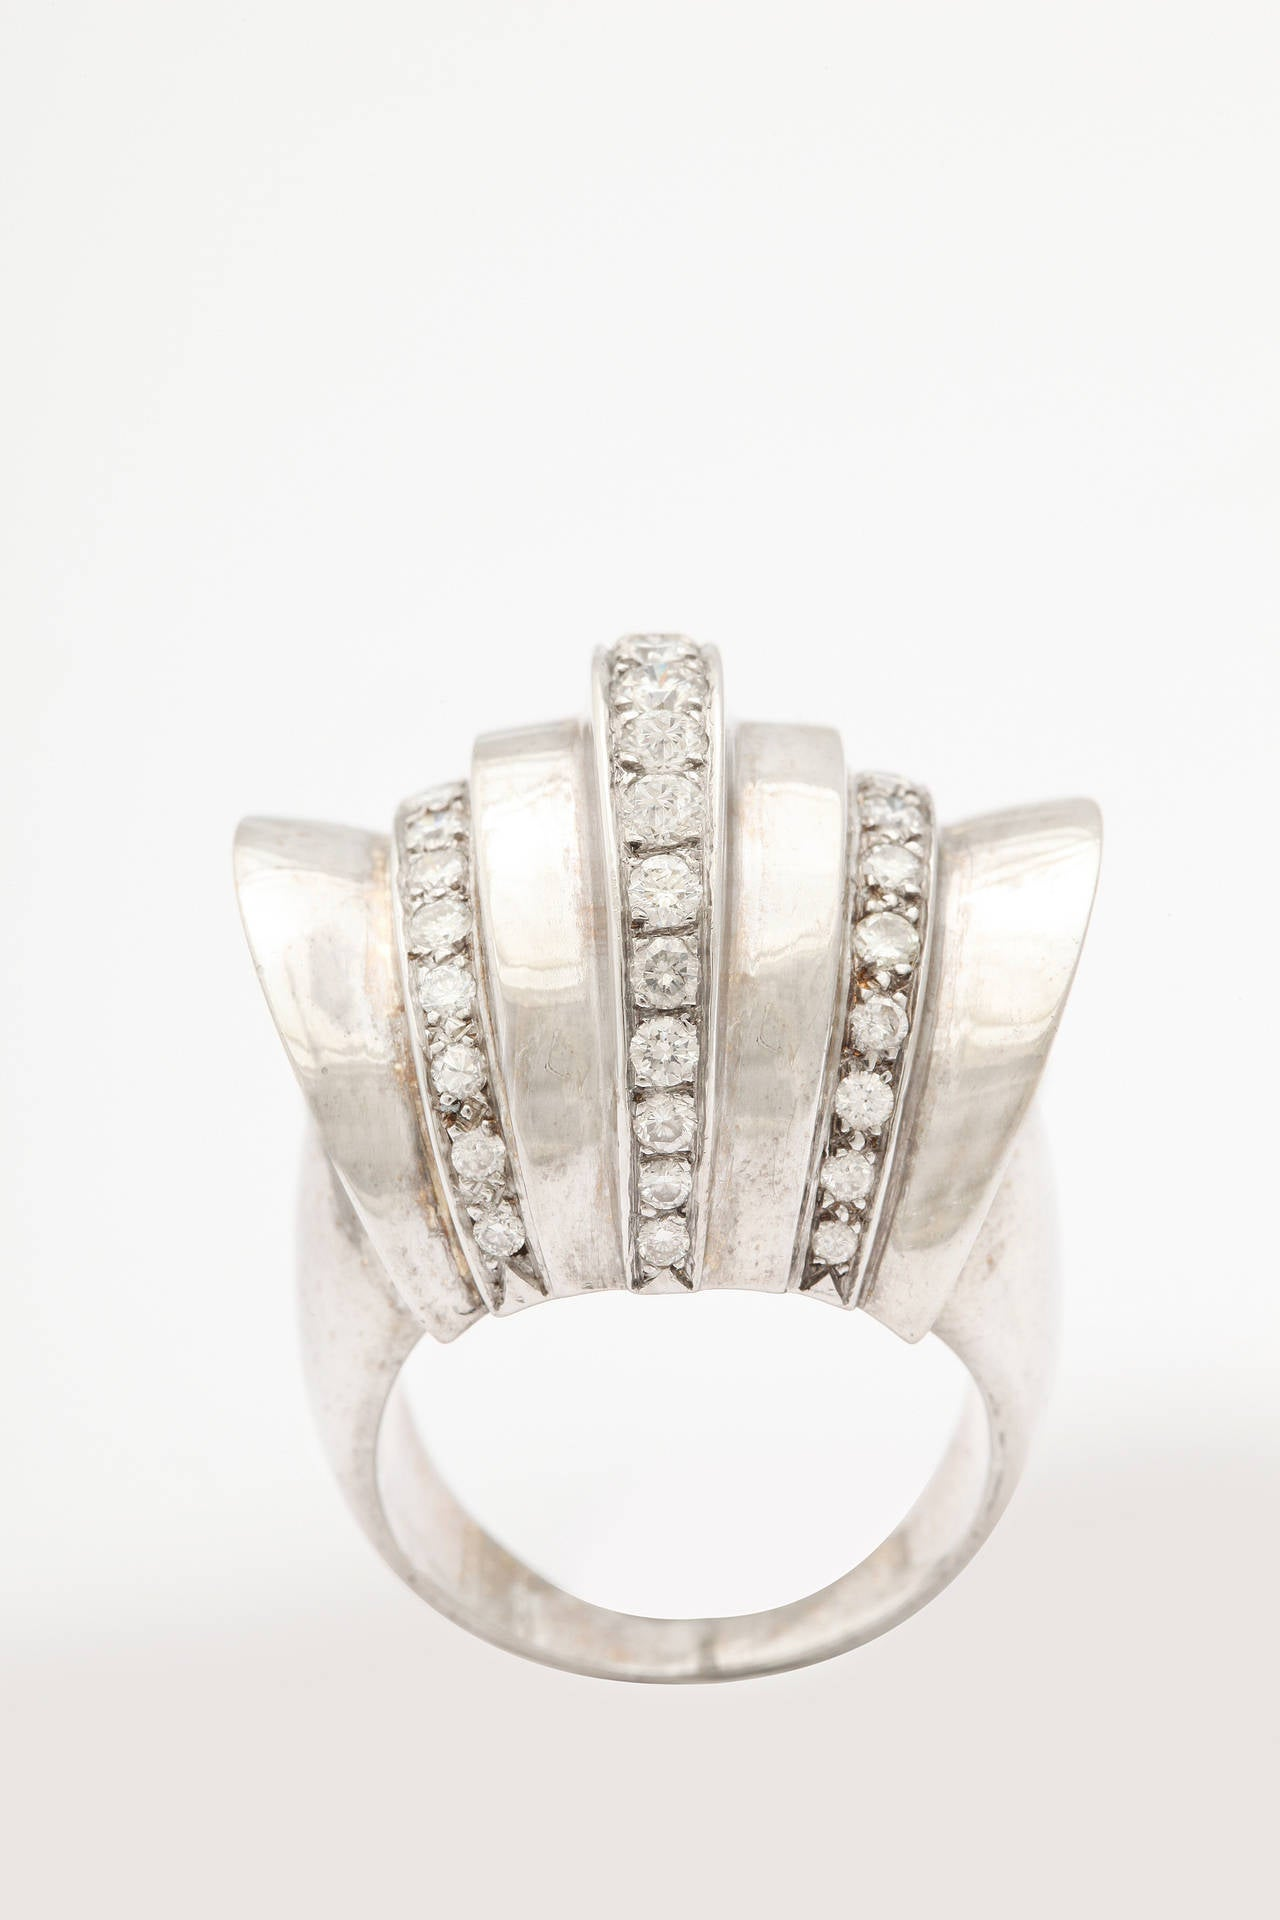 Women's 1940s Retro Diamond Gold Cocktail Ring For Sale